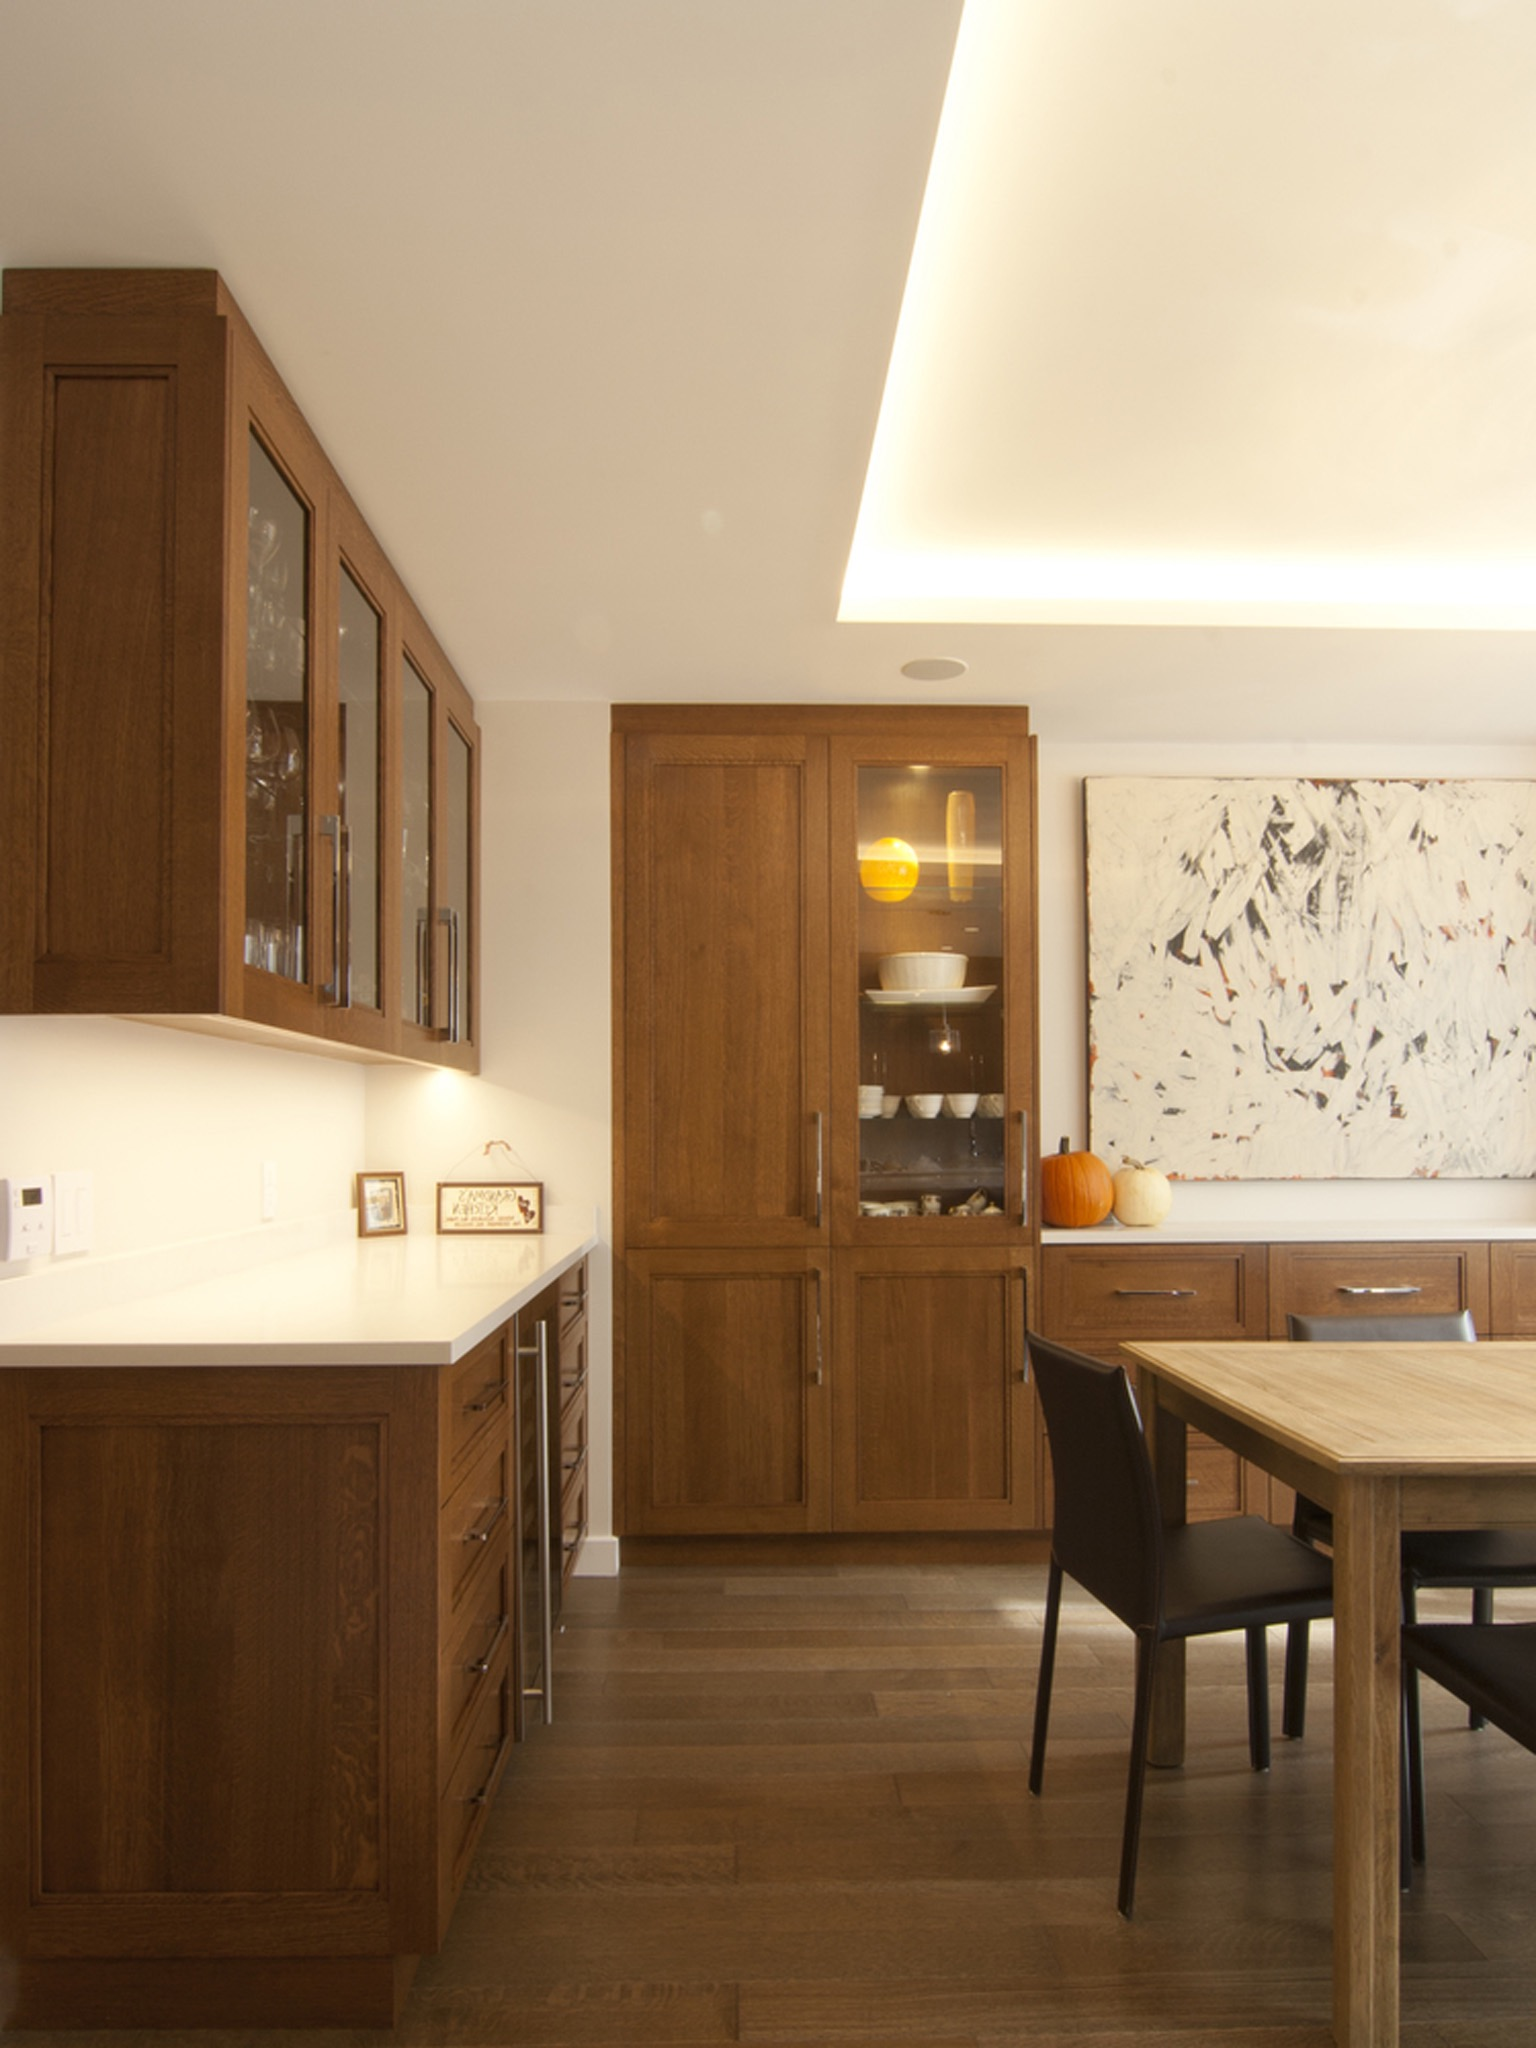 Contemporary Dining Room With Ample Storage (Image 9 of 25)